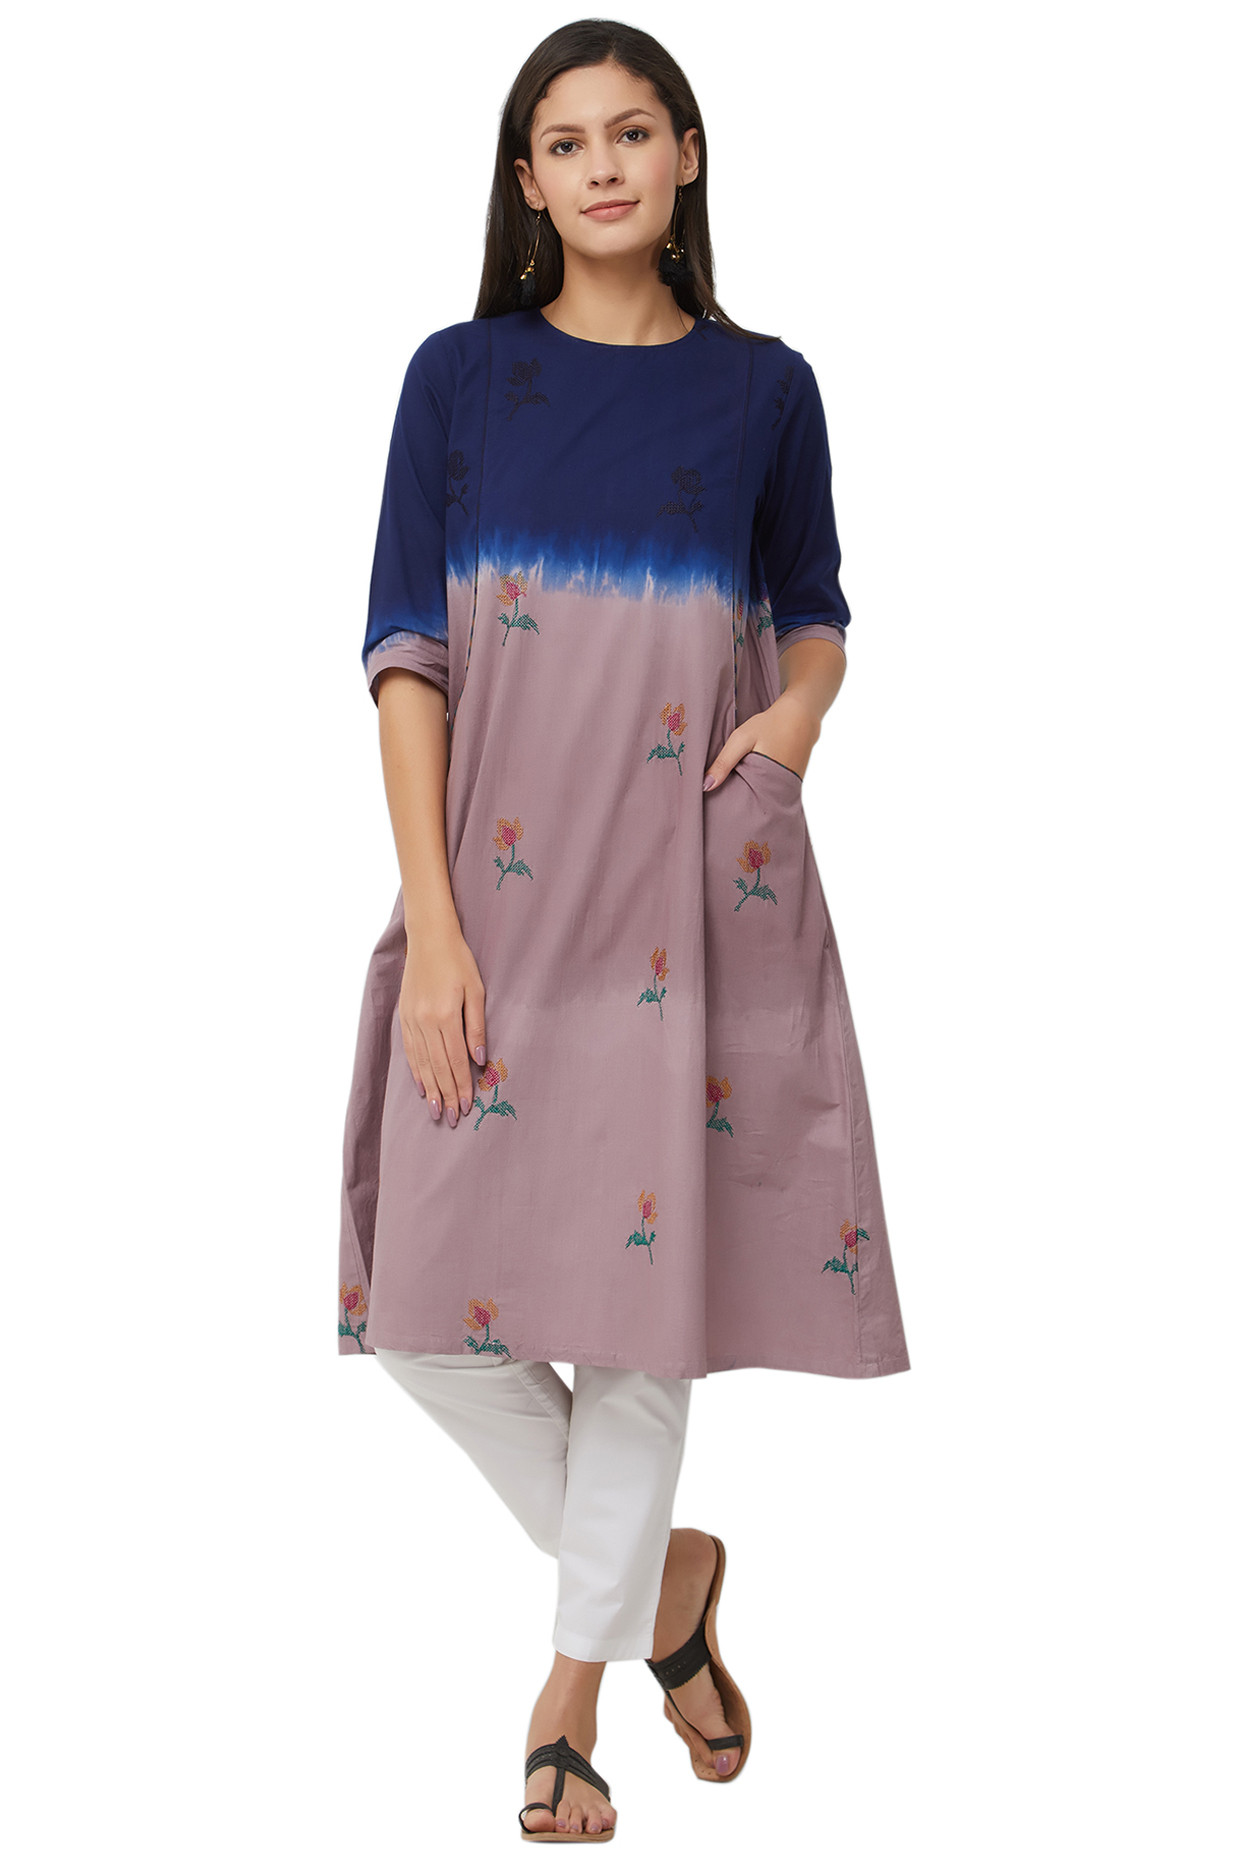 Multicolored Embroidered Tie Dye Kurti In Pure Cotton by House Of Idar